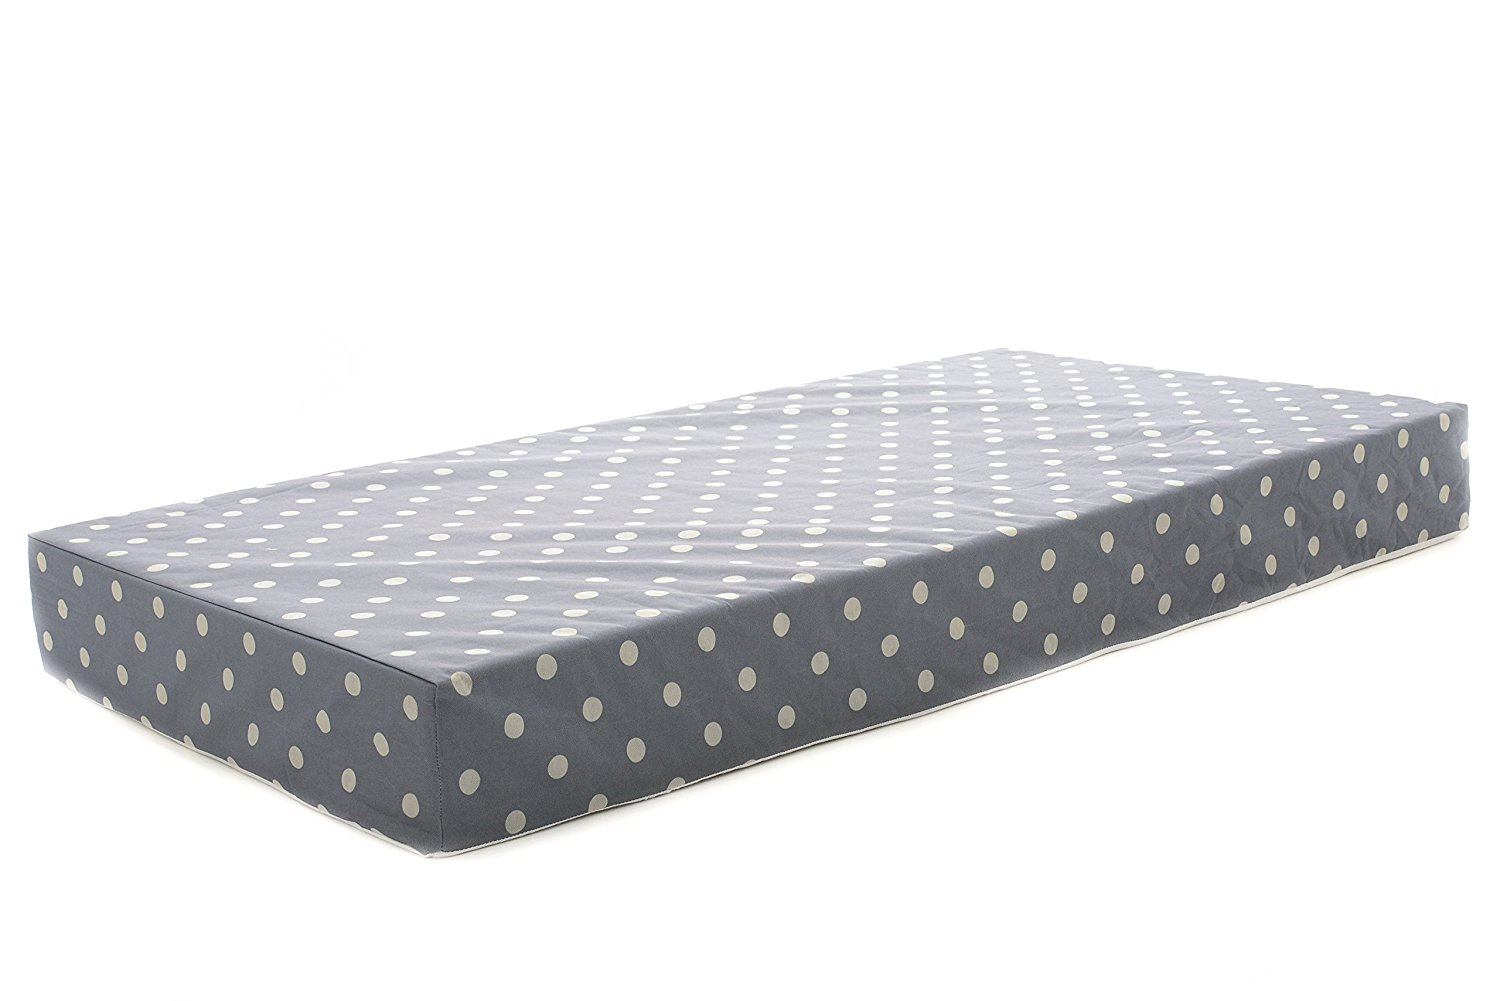 milliard hypoallergenic baby and toddler mattress, best crib mattress, crib mattress, baby crib mattress, toddler crib mattress, waterproof crib mattress, affordable crib mattress